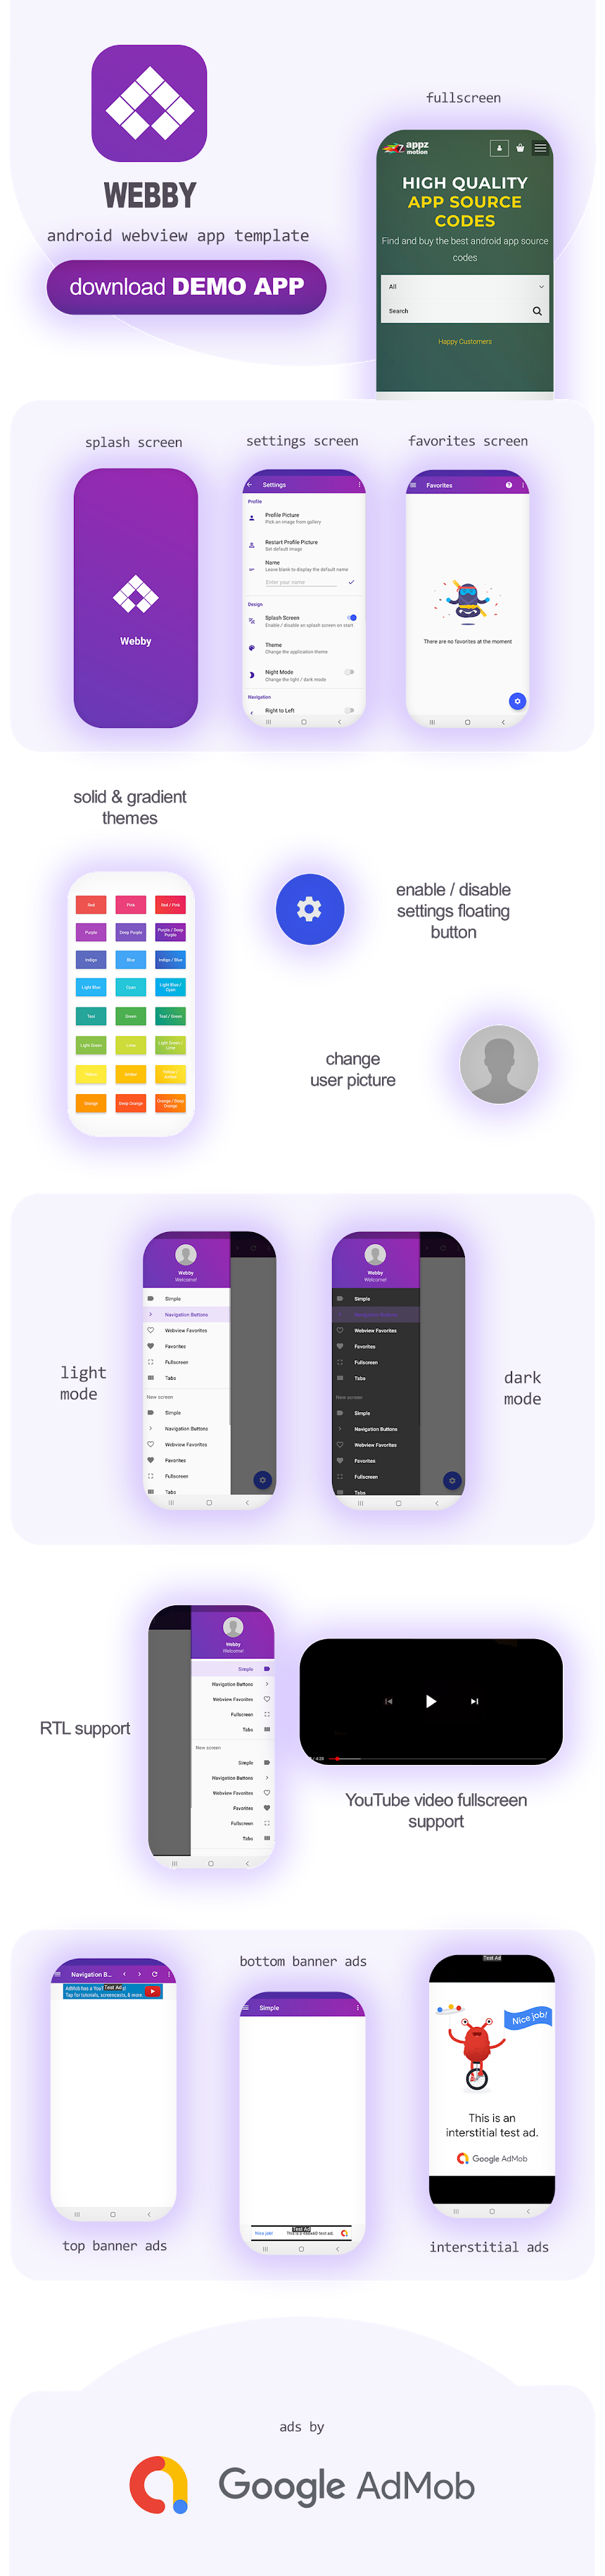 Webby Features WebView App Template